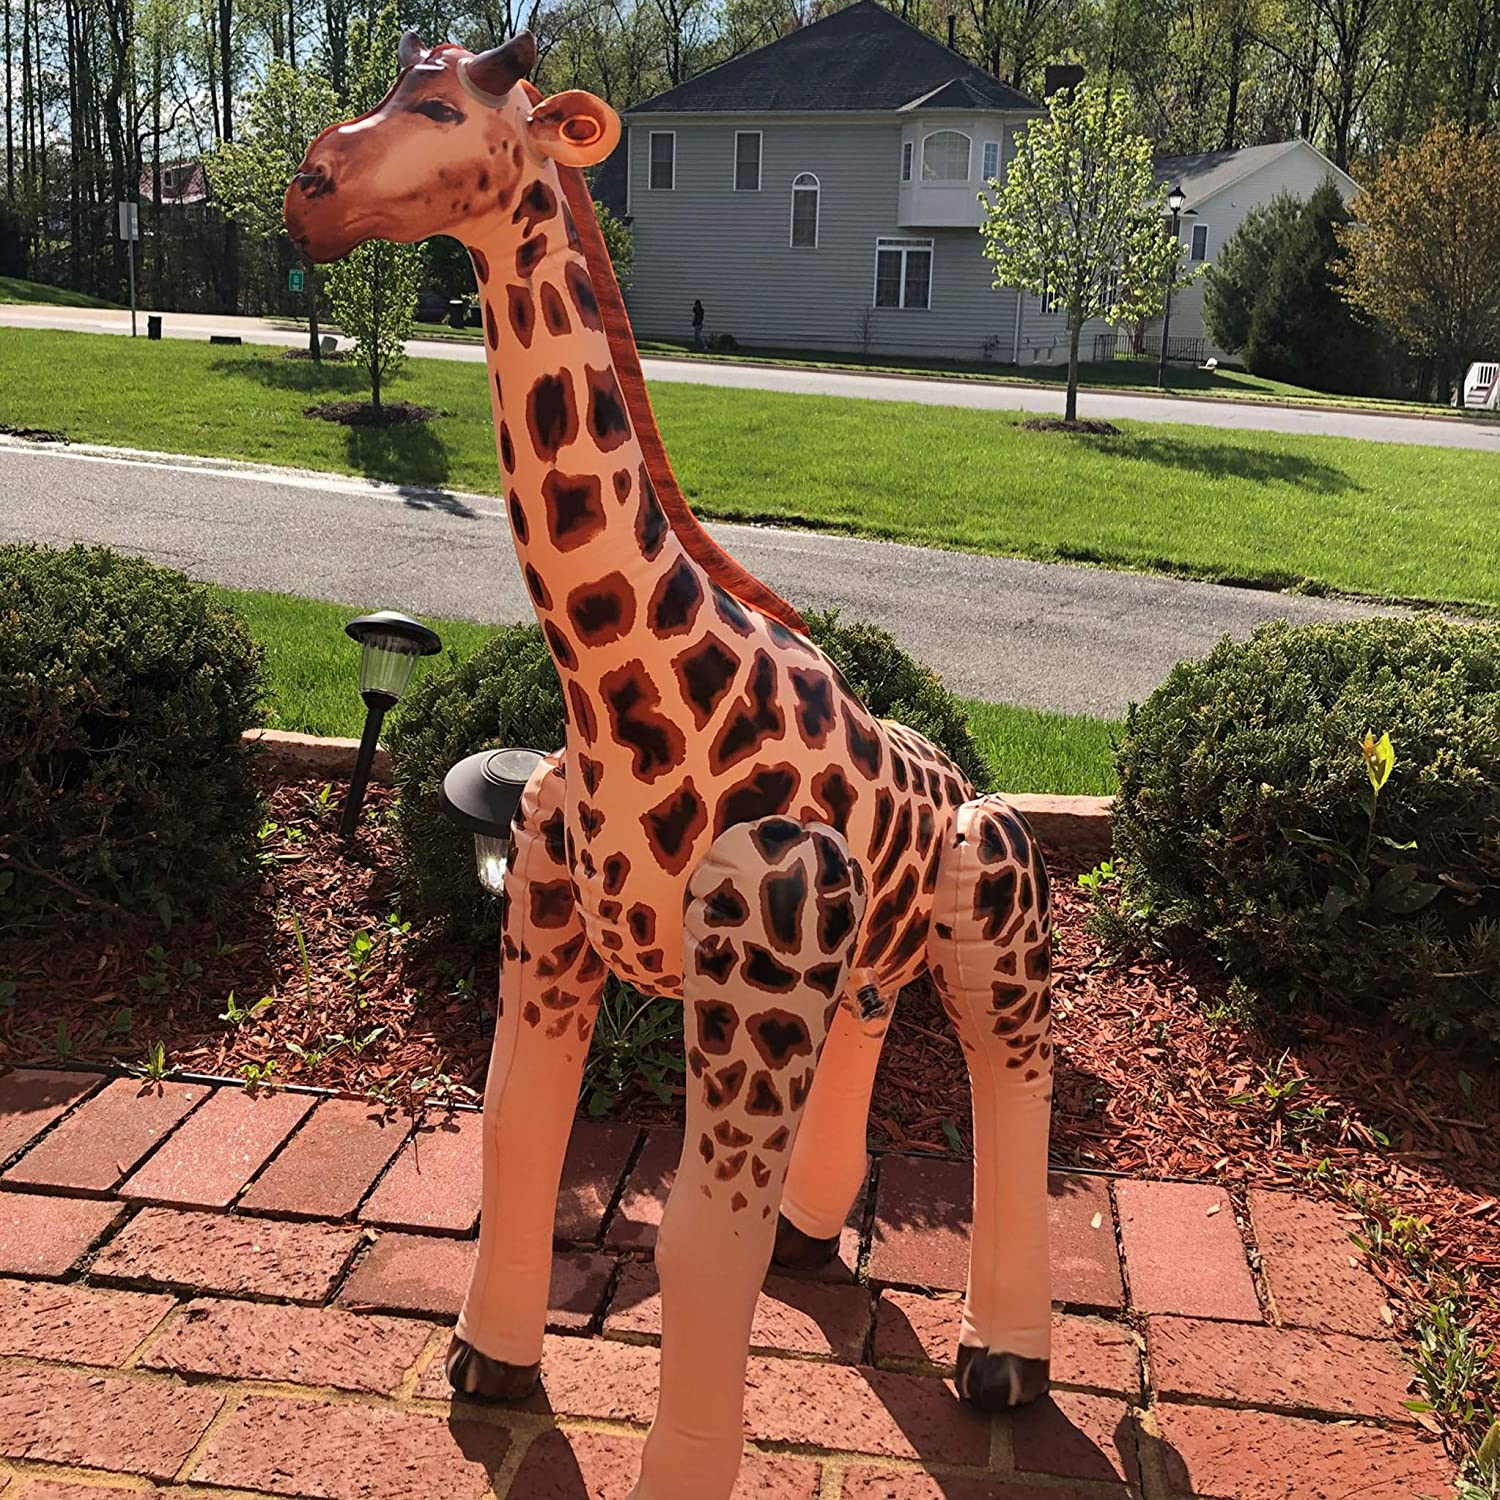 4. Inflatable Giraffe - Party Decoration